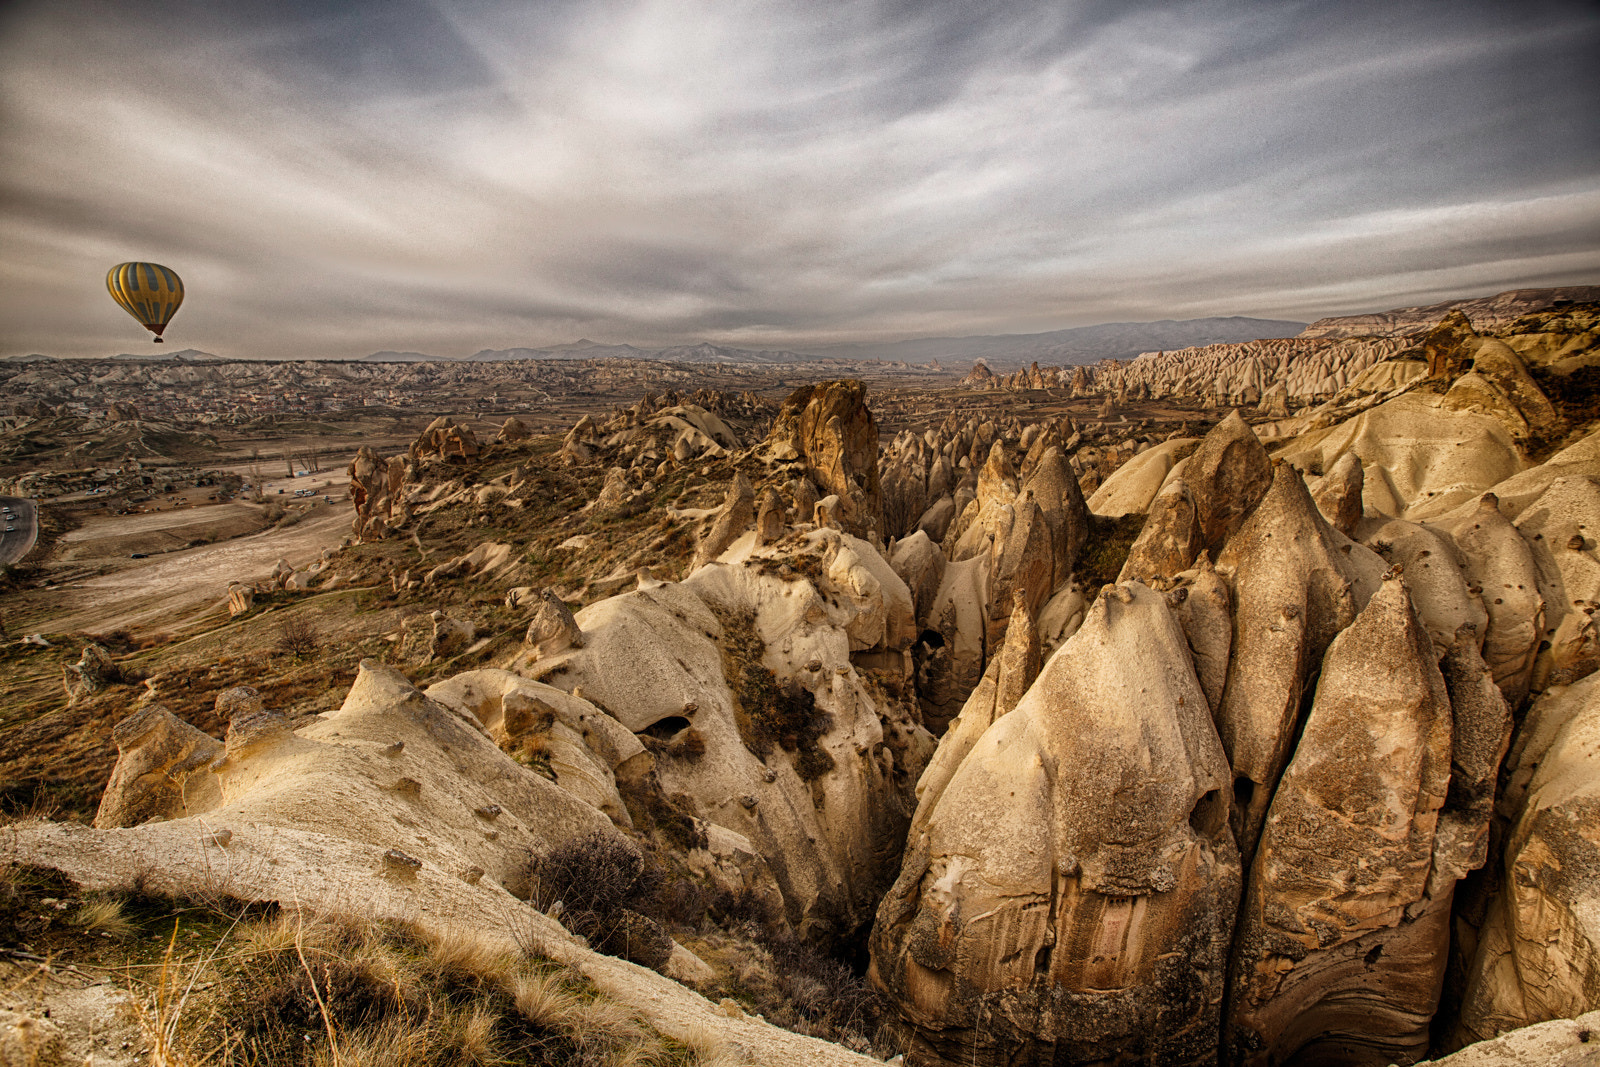 Photograph Balloon over Goreme by Marty Taylor on 500px